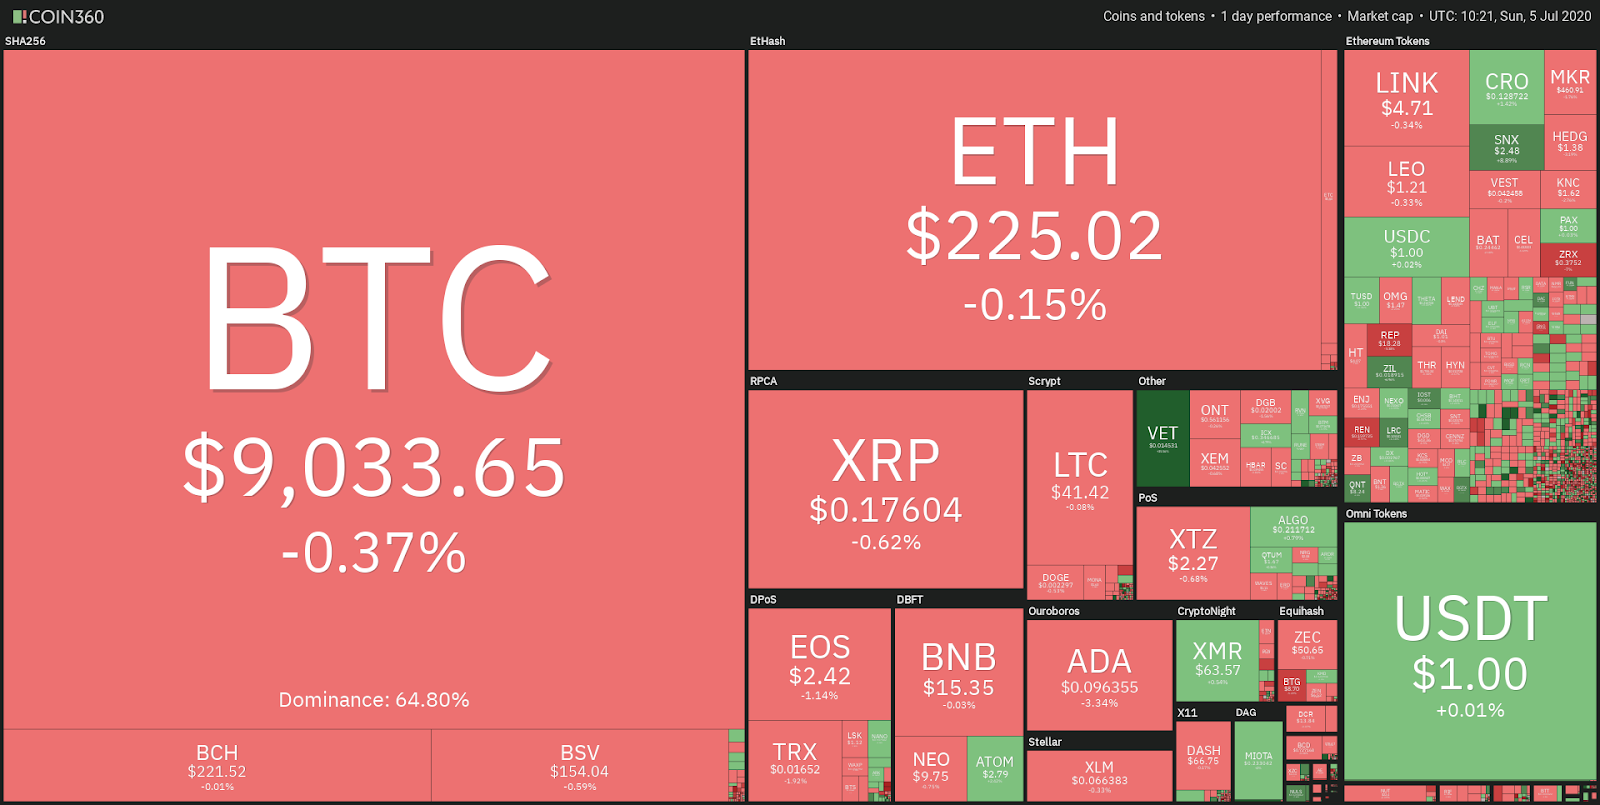 Daily crypto market performance